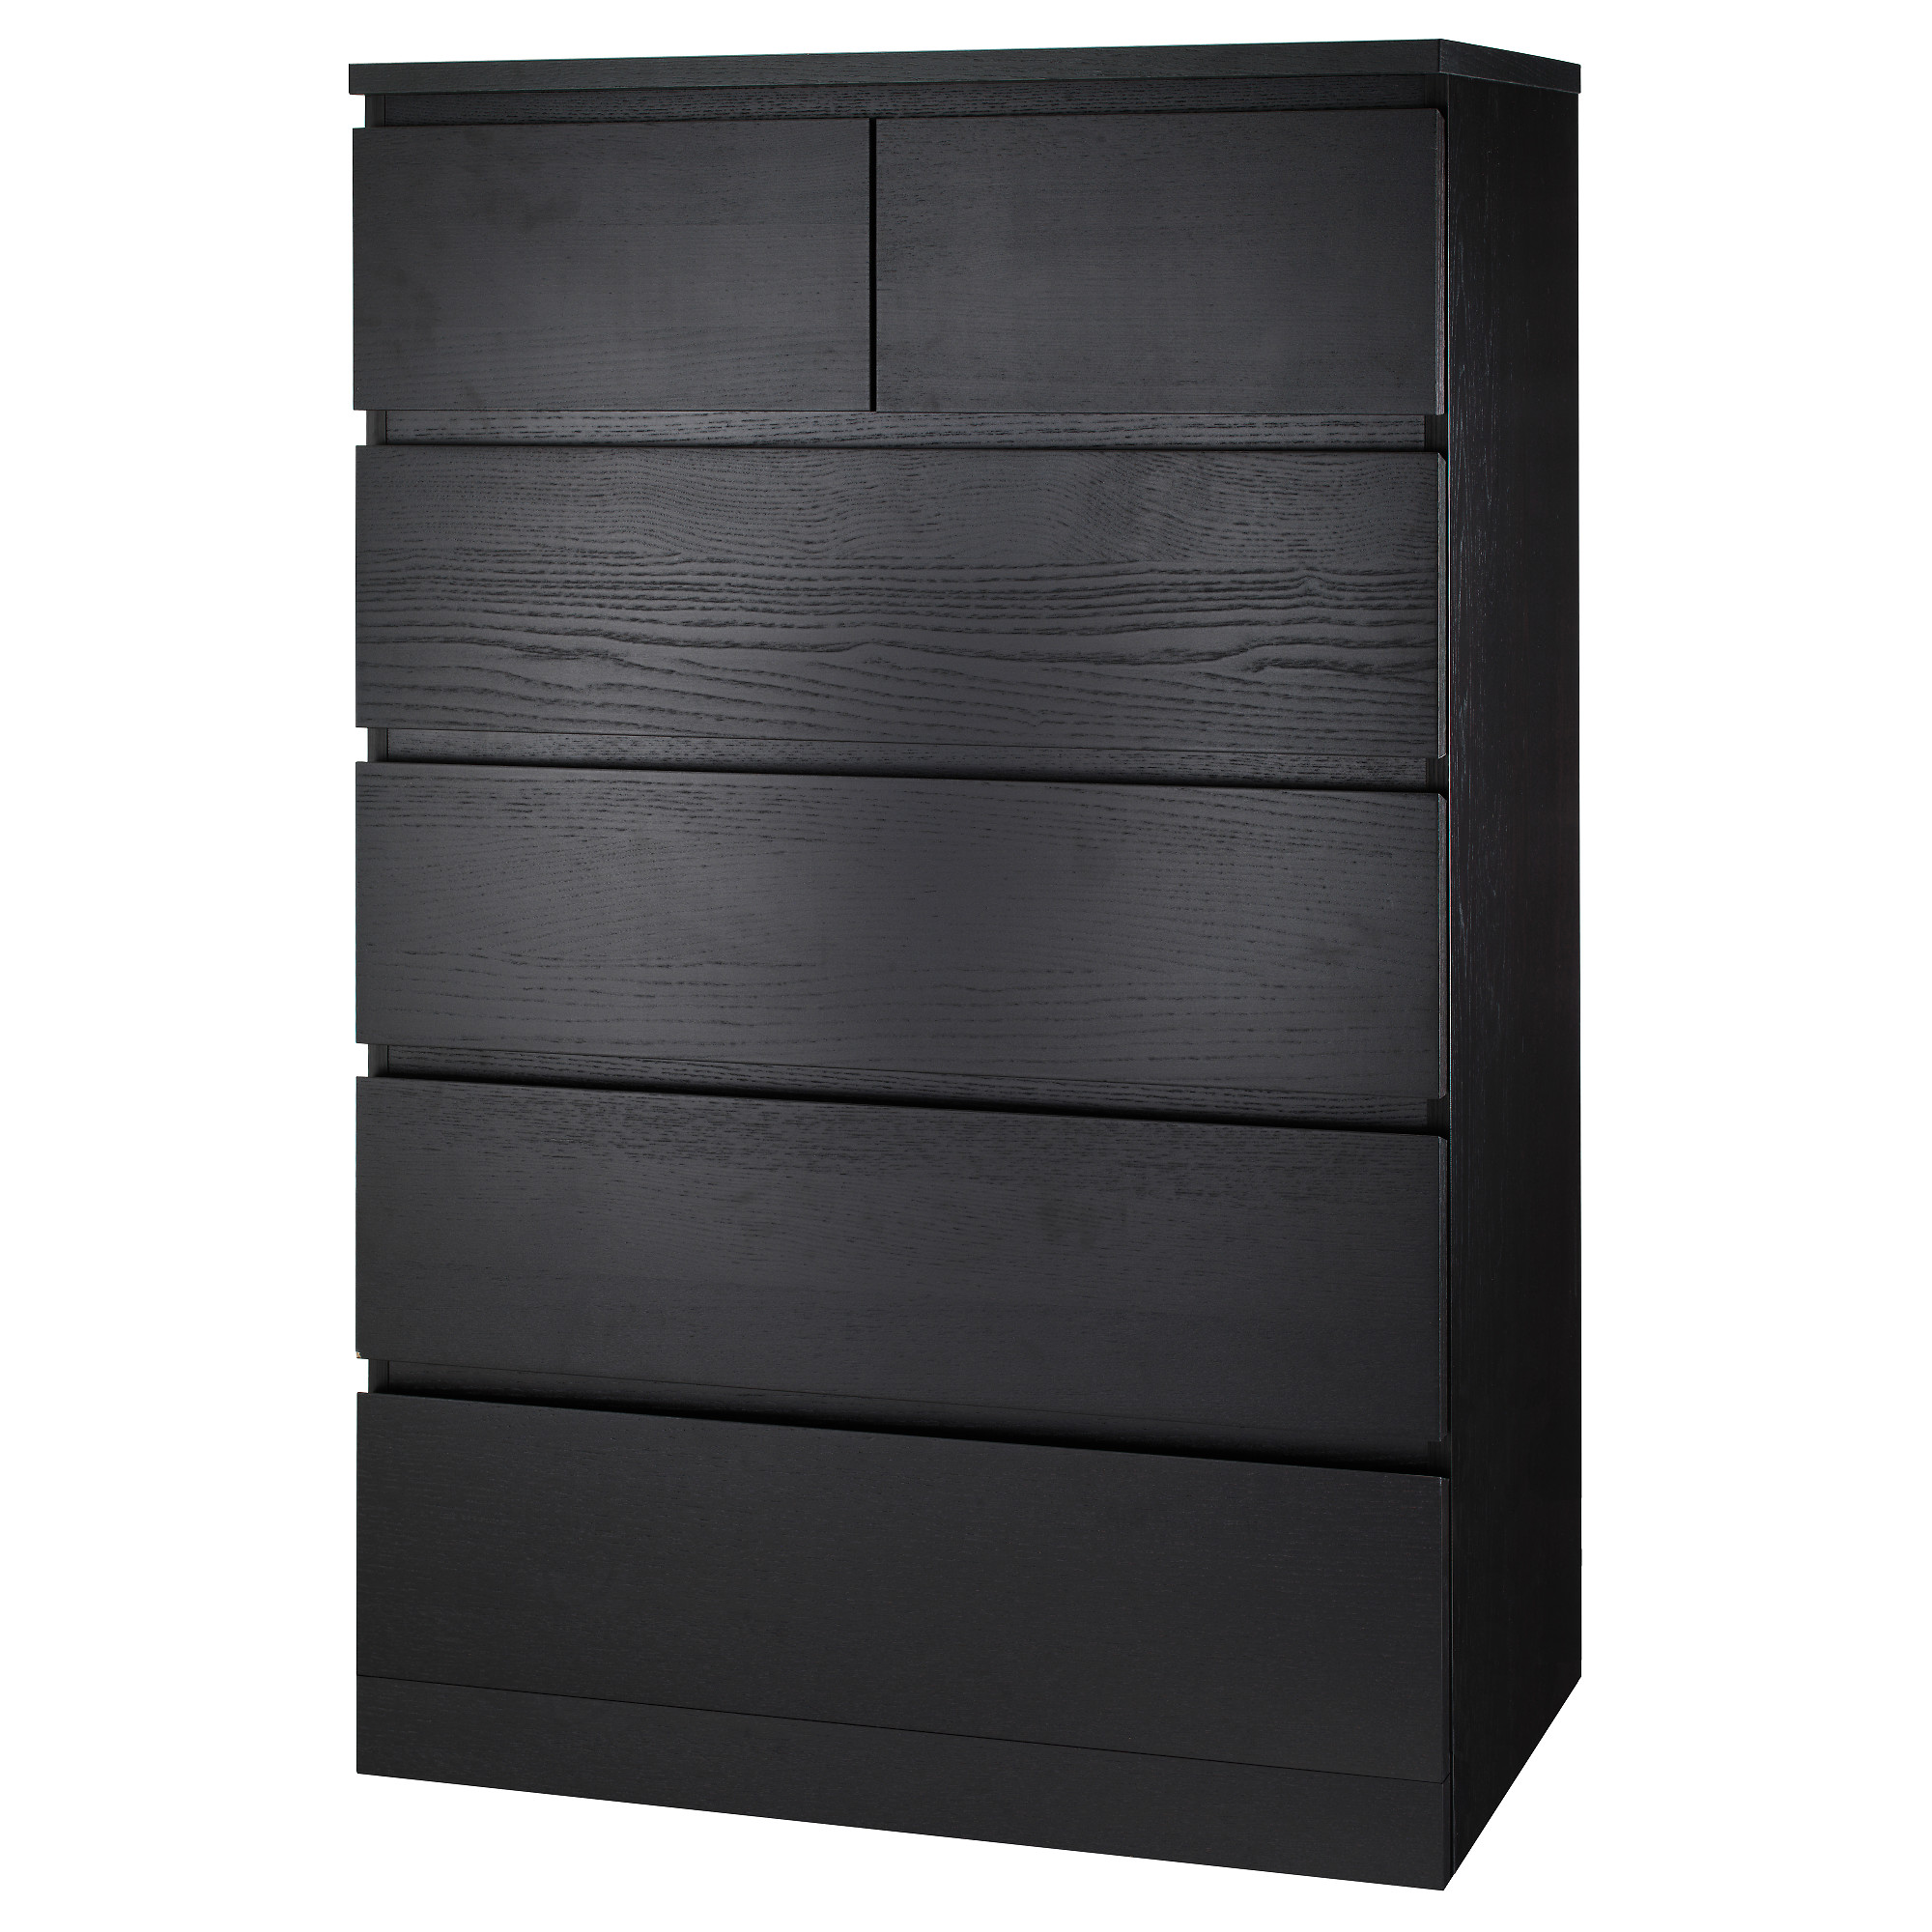 Malm 6 Drawer Chest Black Brown Width 31 1 2